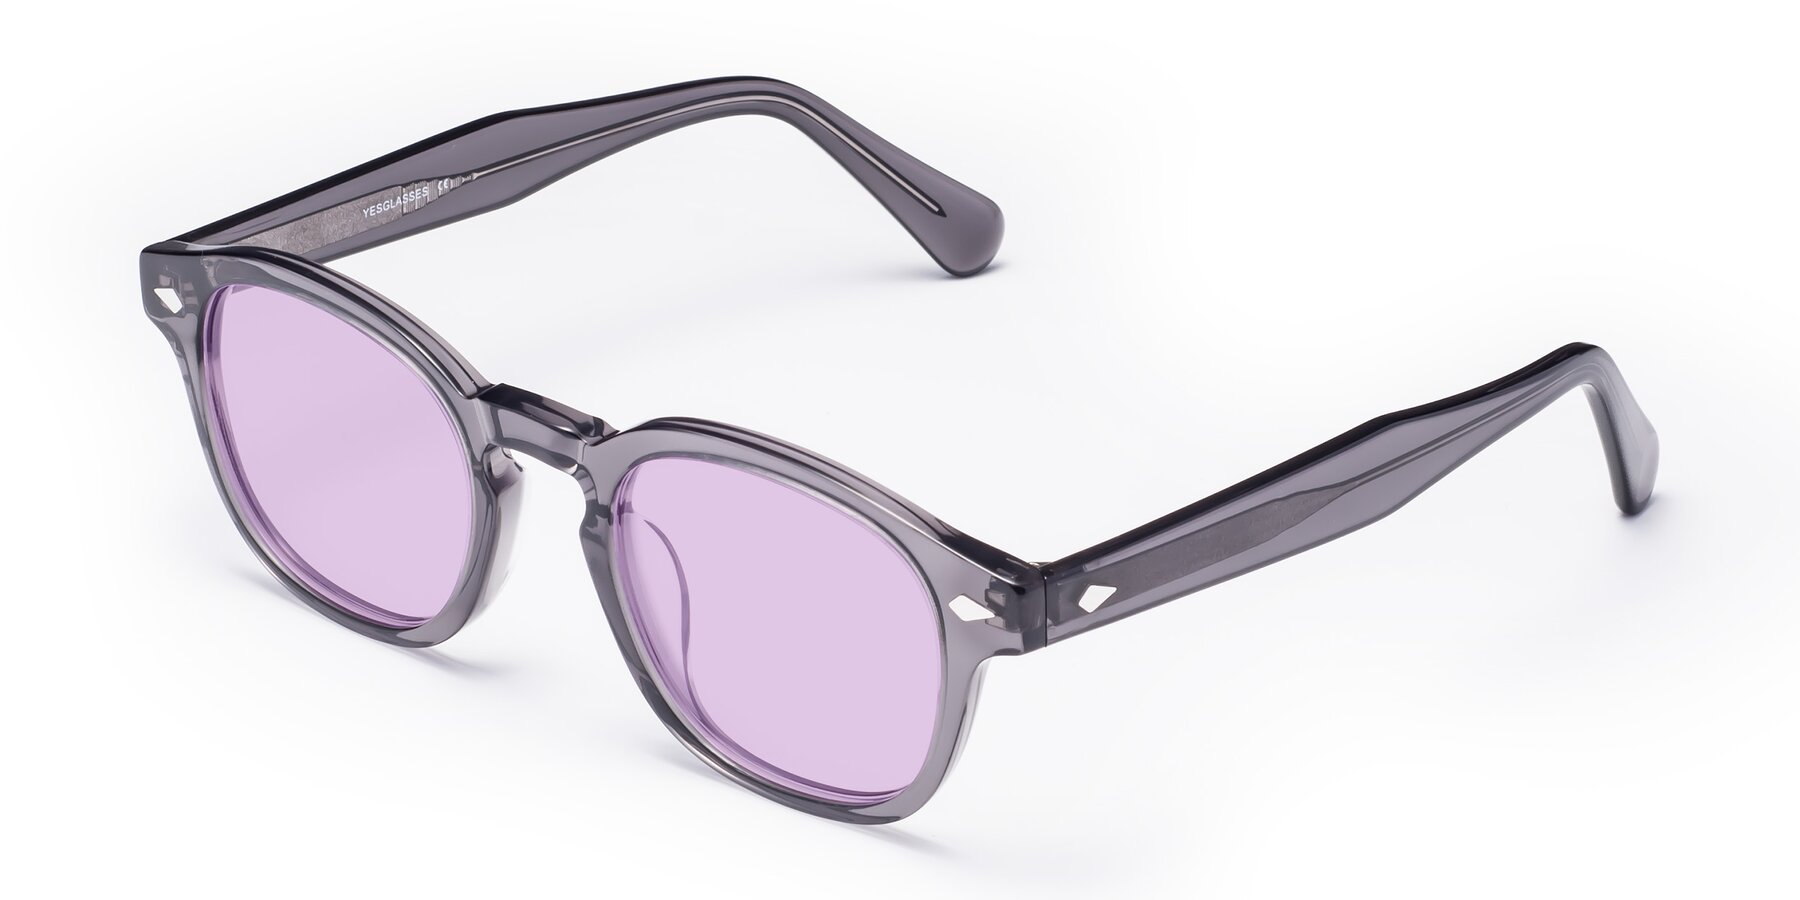 Angle of WALL-E in Translucent Gray with Light Purple Tinted Lenses